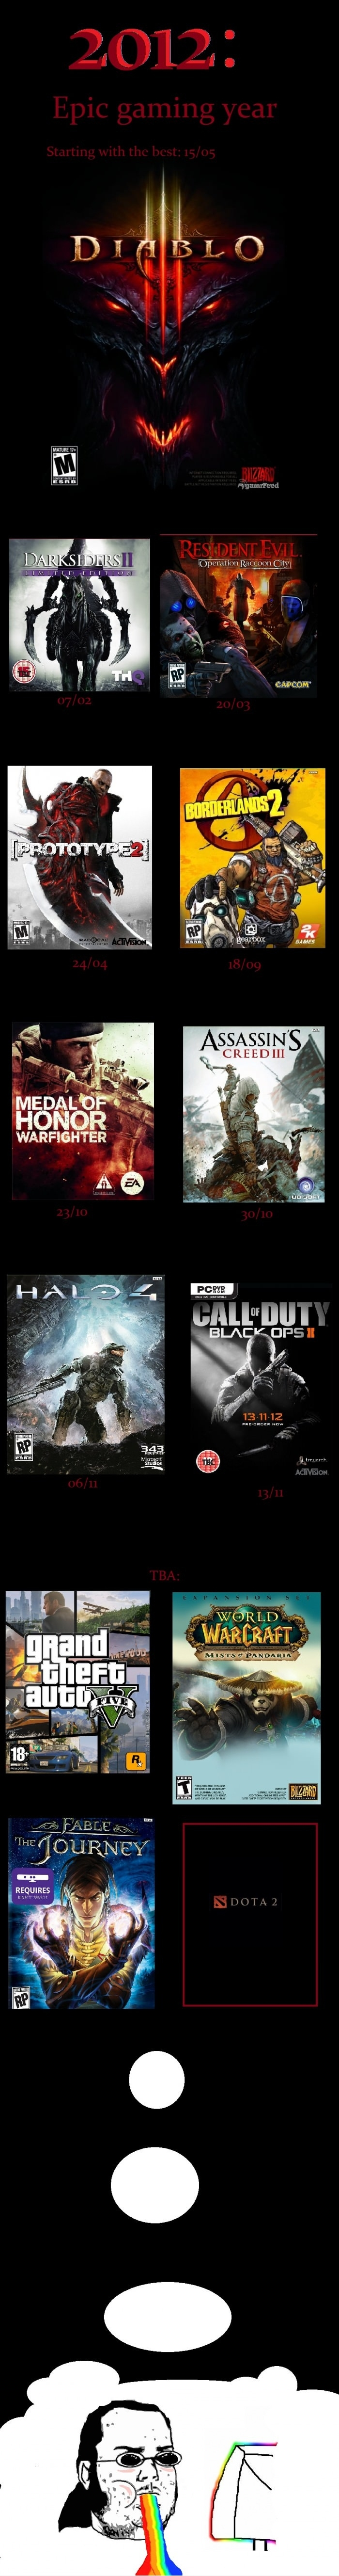 Epic 2012 Games